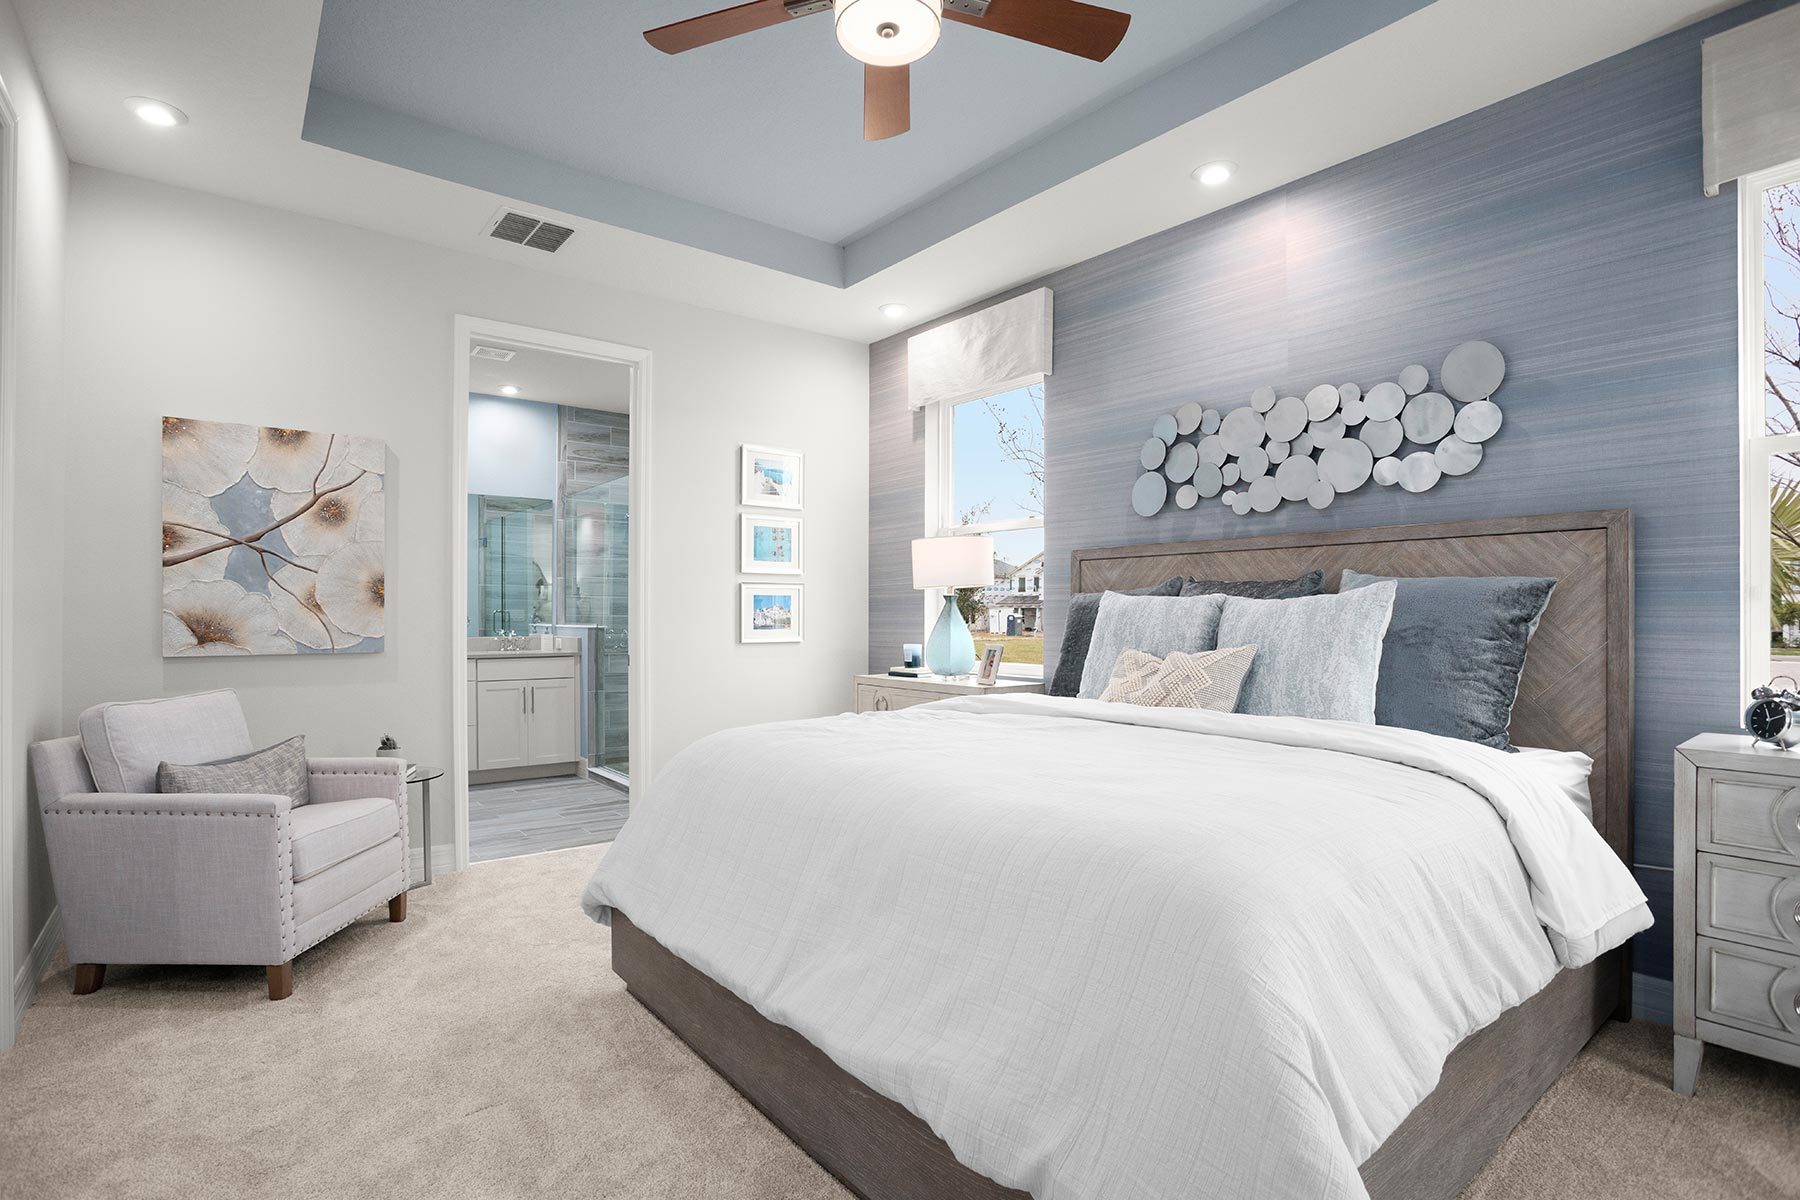 Meridian Parks Bedroom in Orlando Florida by Mattamy Homes